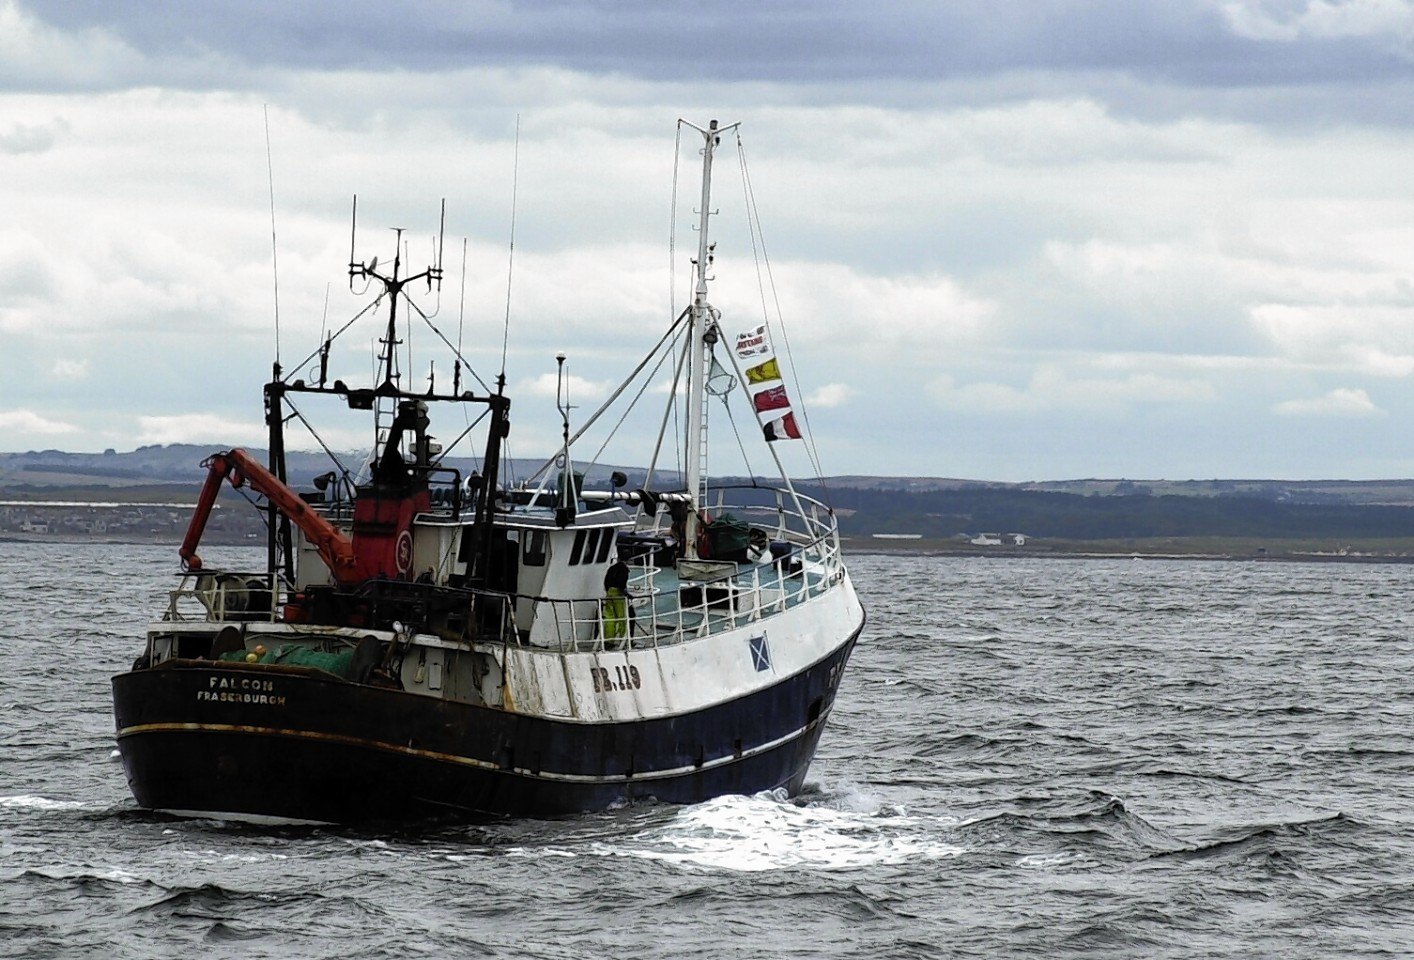 A fishing trawler heads out to sea, they've come a long way since the Fairtry